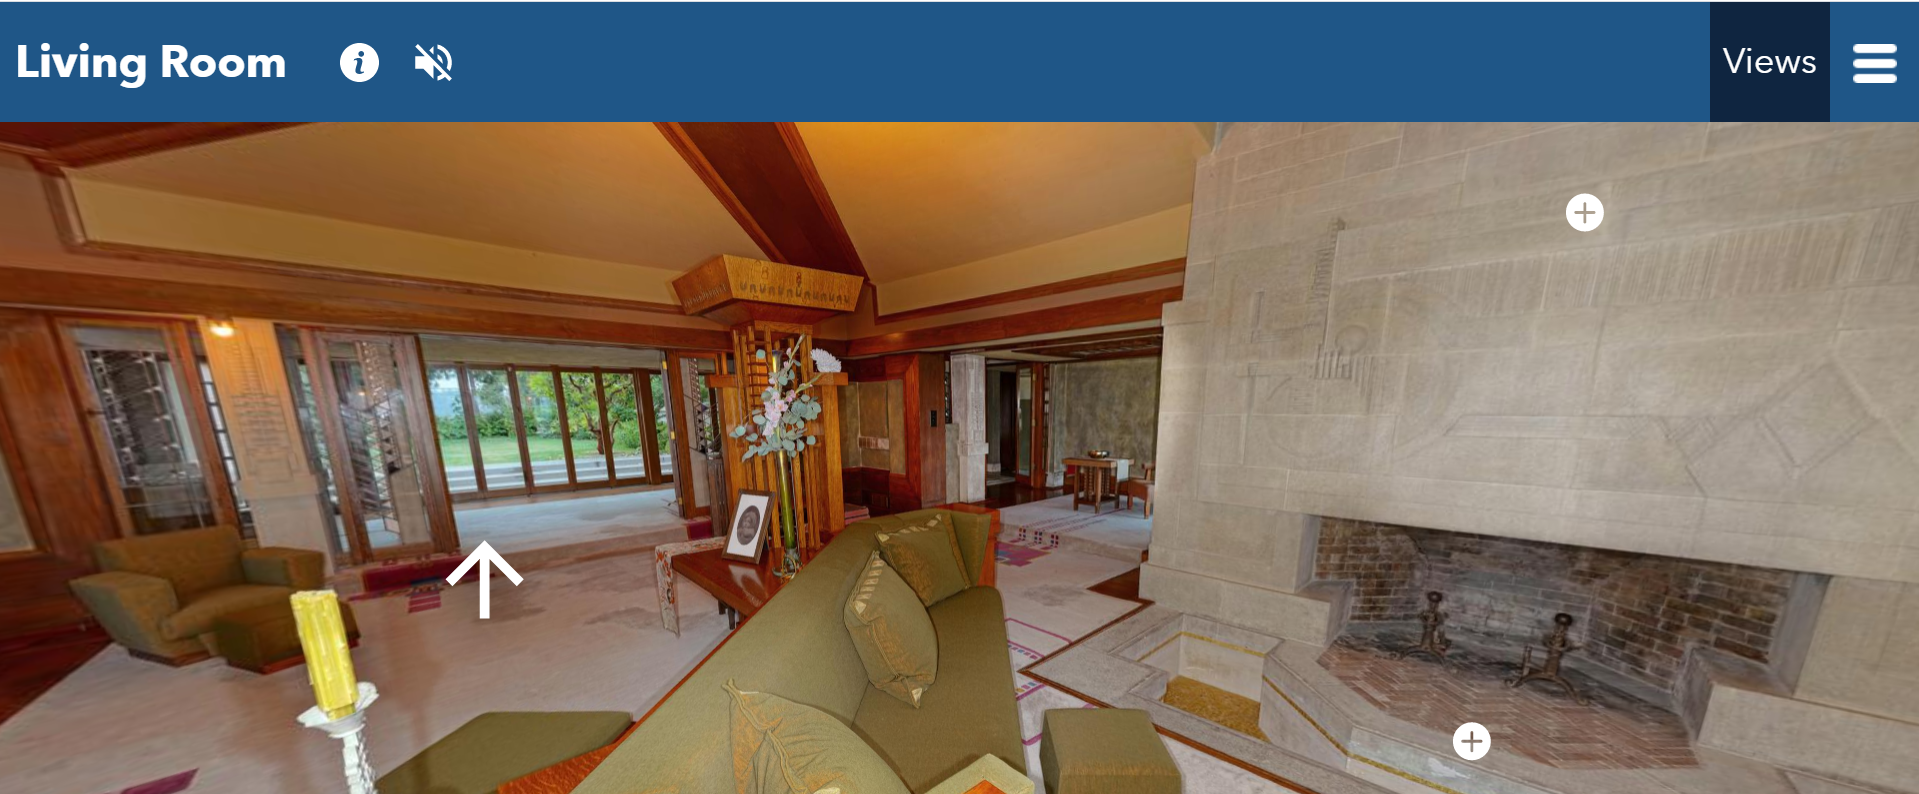 Screenshot of the Hollyhock House living room on the virtual tour